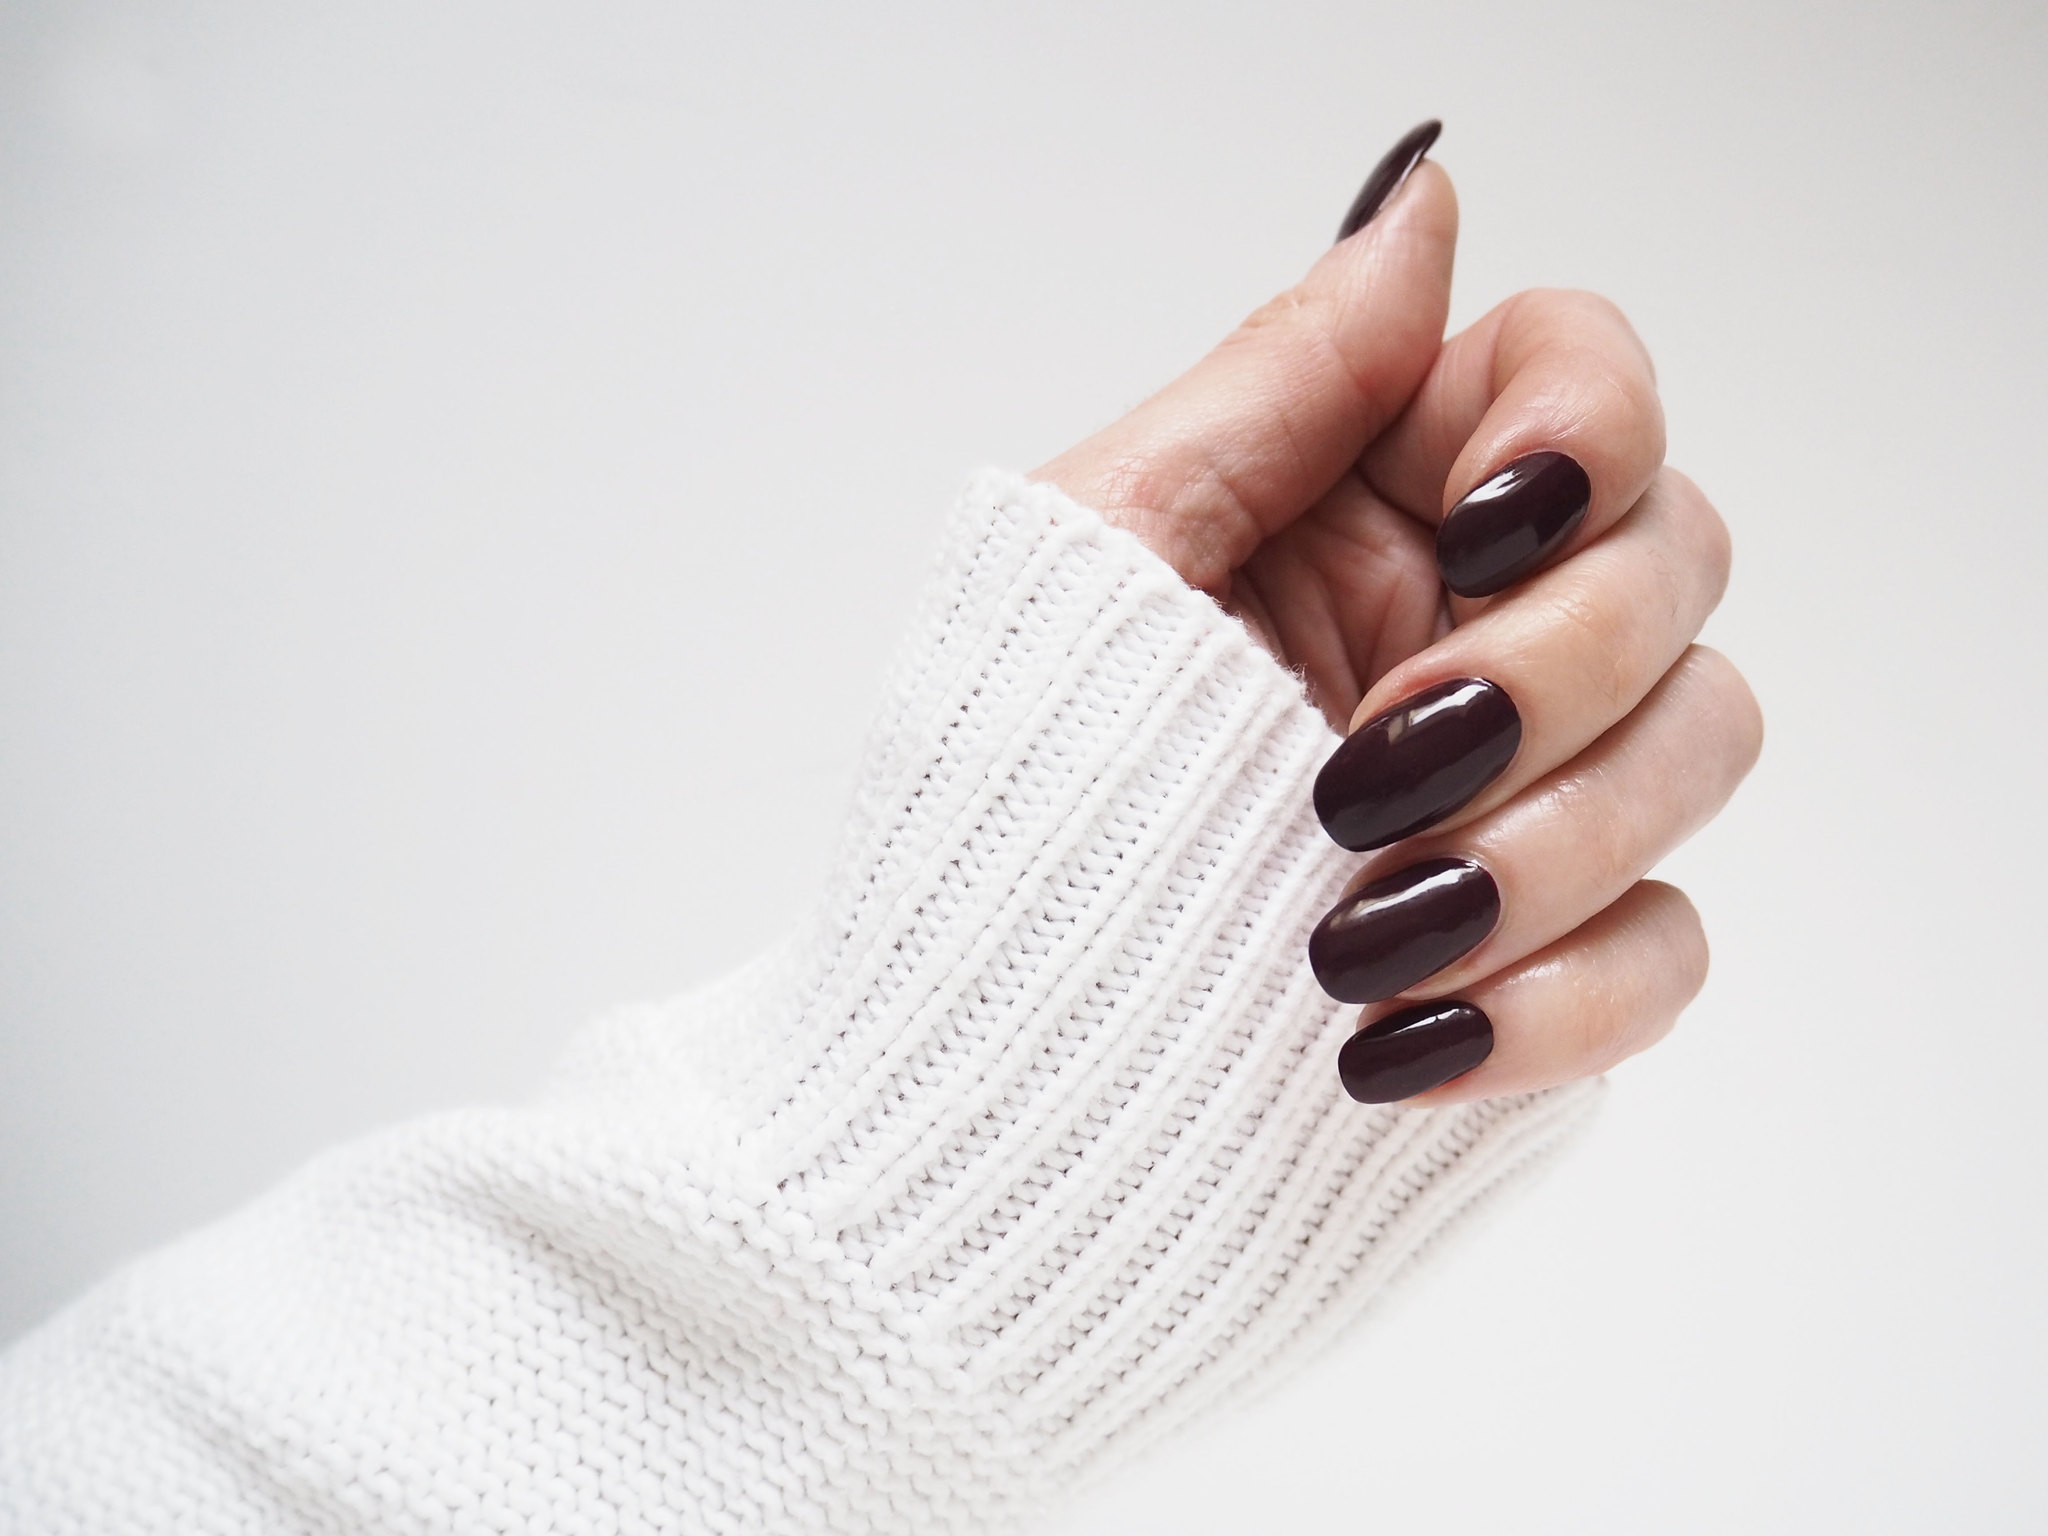 Update your beauty look: New nail shape (the squoval) | Not Dressed As Lamb, over 40 style blog